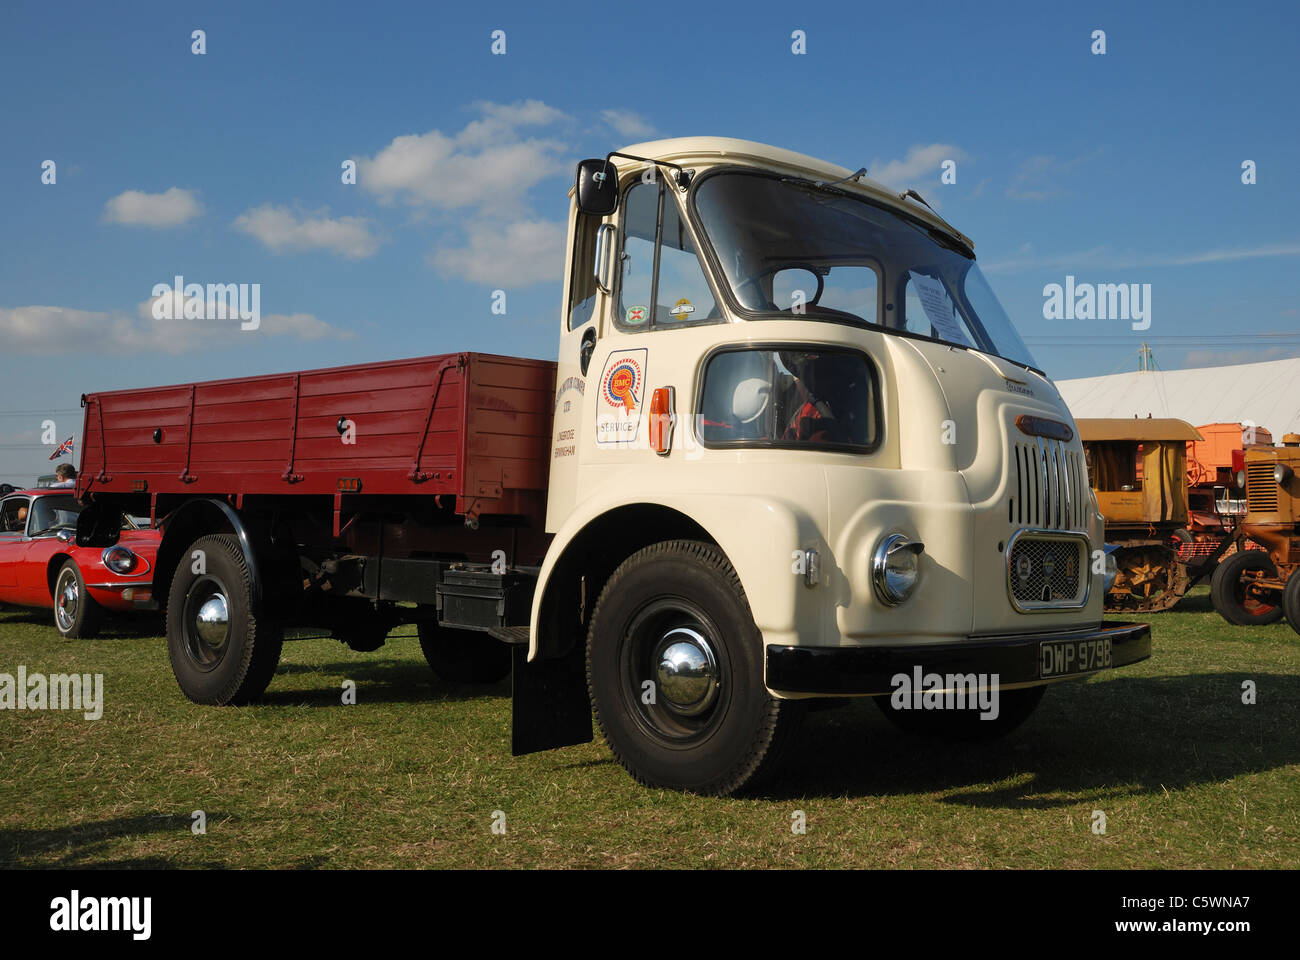 A 1964 BMC 1 5 ton truck (known as a 'Threepenny Bit Cab' Stock